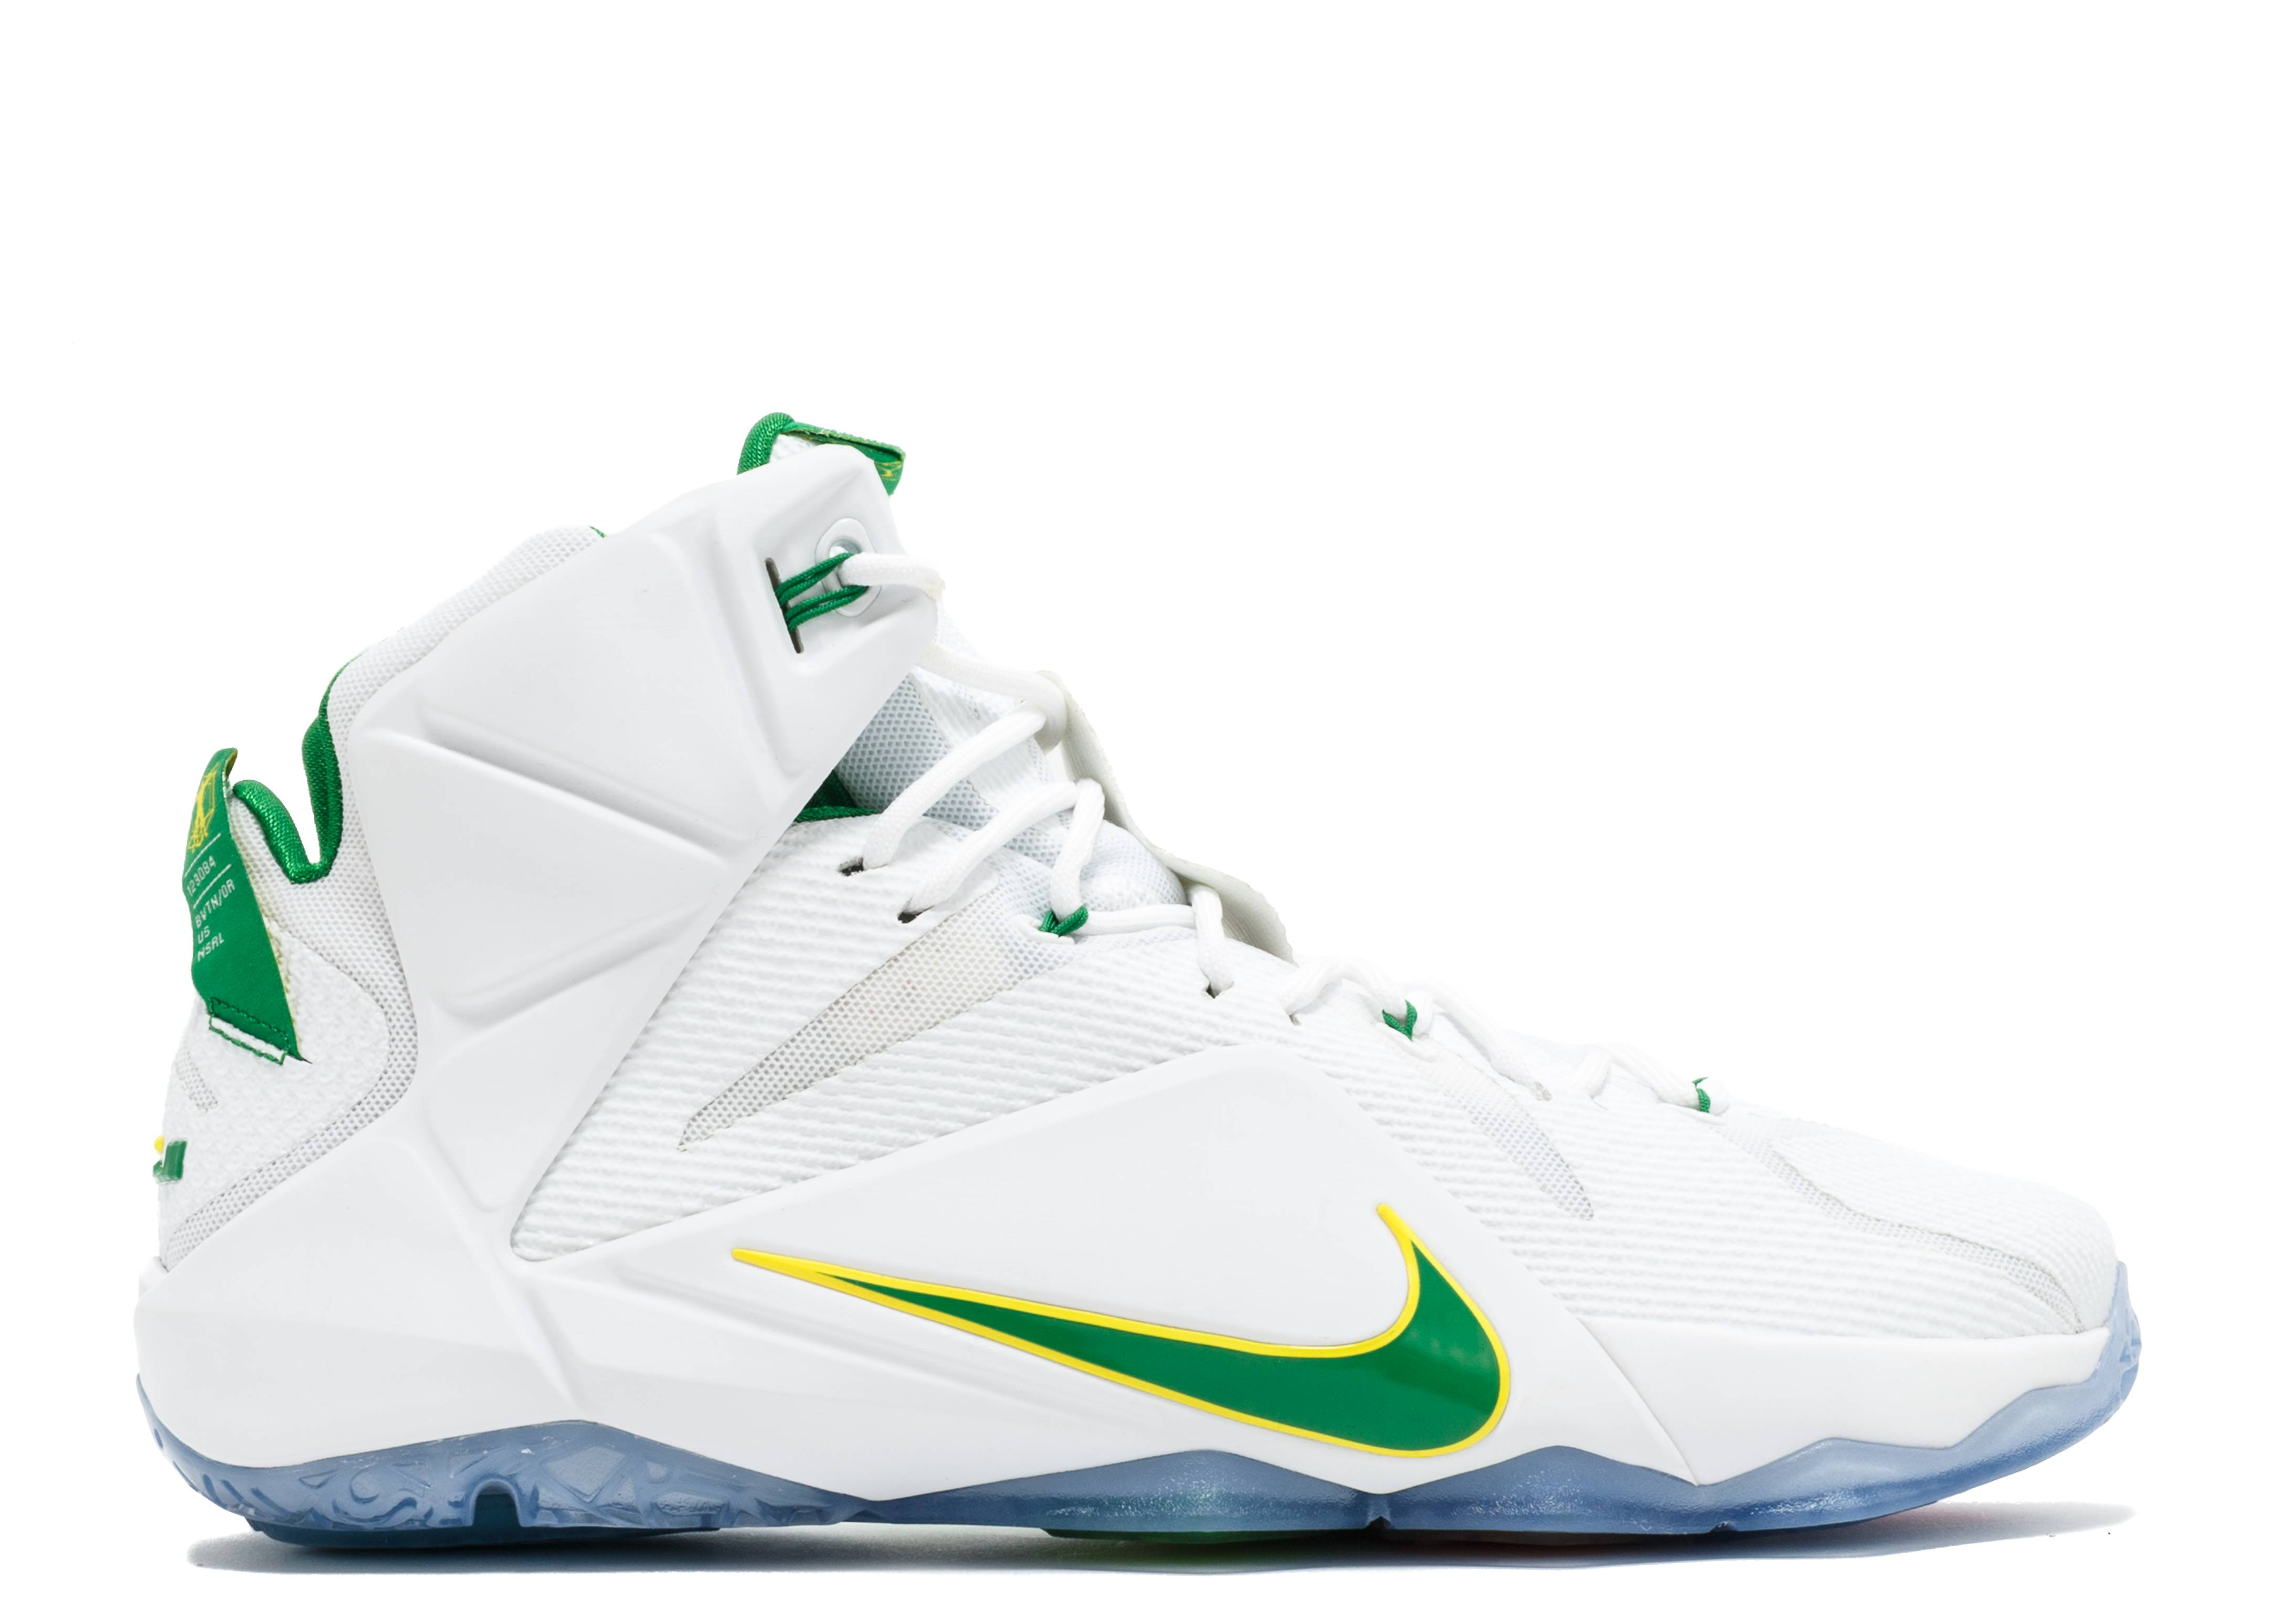 save off 577e9 86149 lebron 12